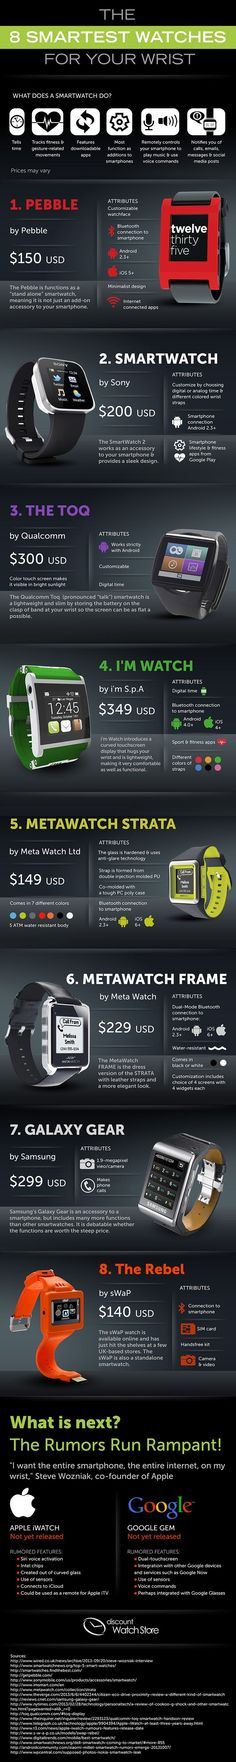 Top Smartest Watches Infographic #smartwatch